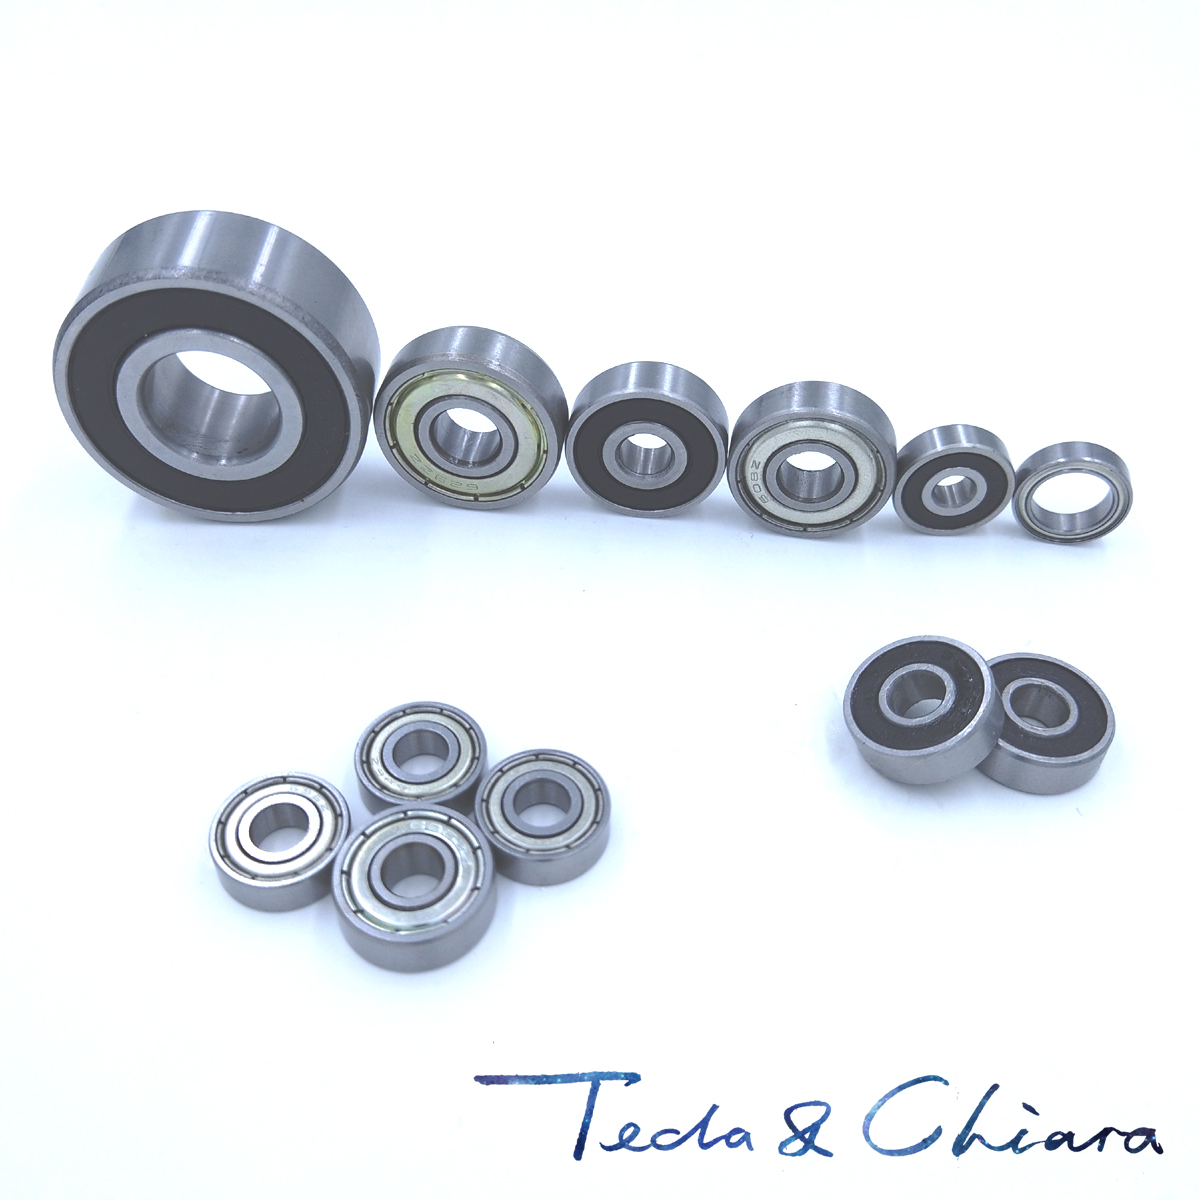 10Pcs 1Lot 625 625ZZ 625RS 625-2Z 625Z 625-2RS ZZ RS RZ 2RZ Deep Groove Ball Bearings 5 x 16 x 5mm